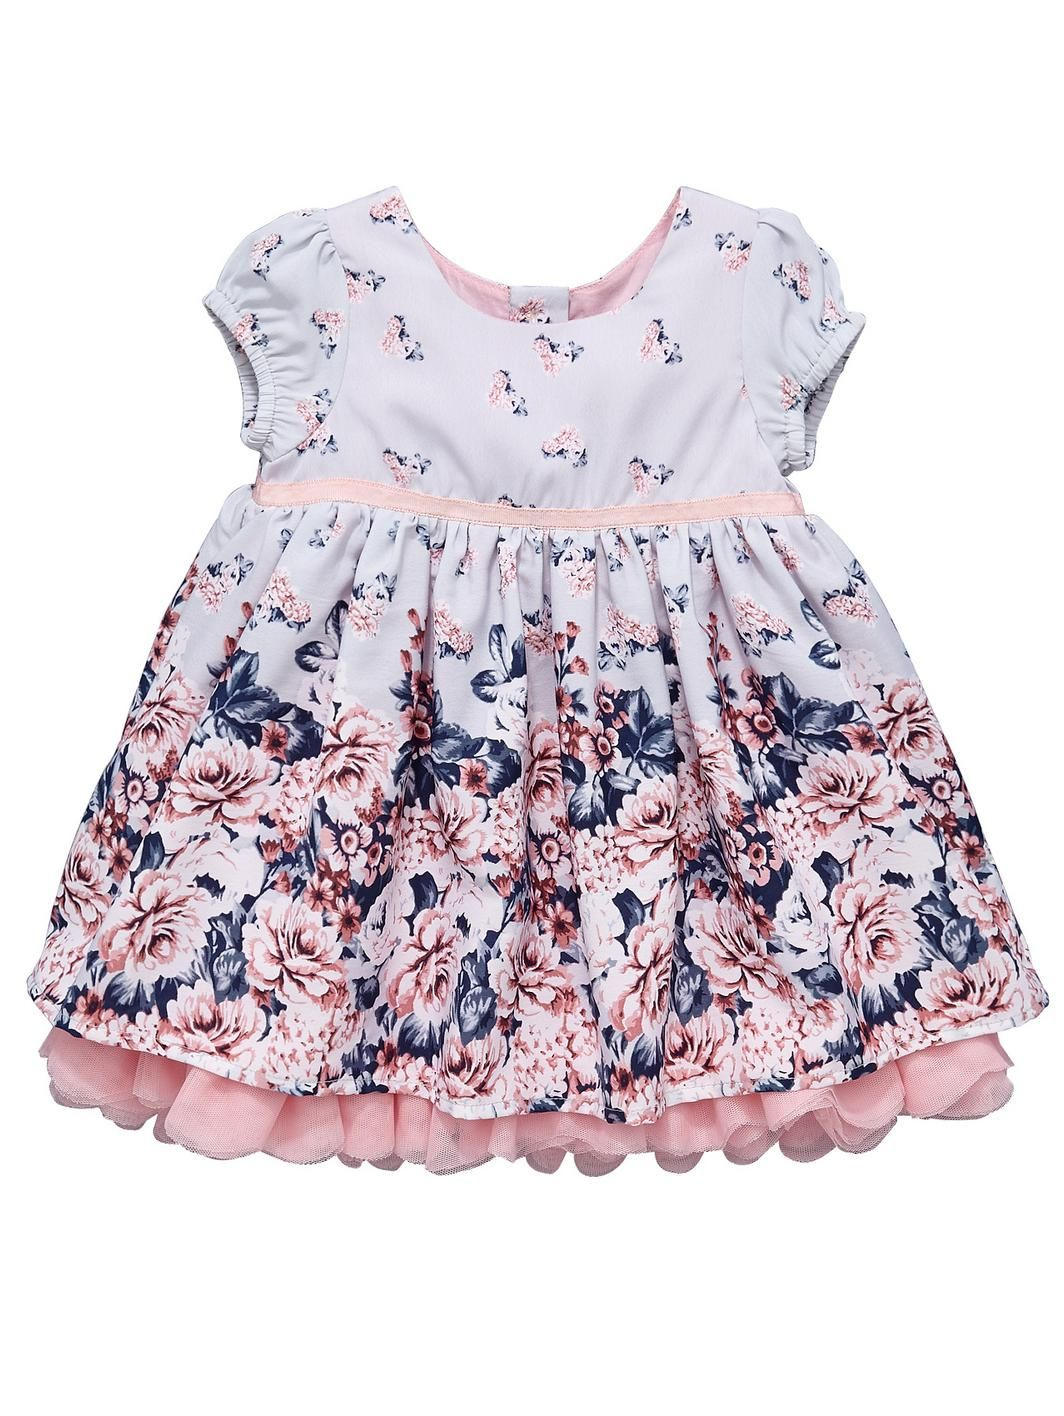 f27b6974fbf6 Baby Girls Border Print Dress